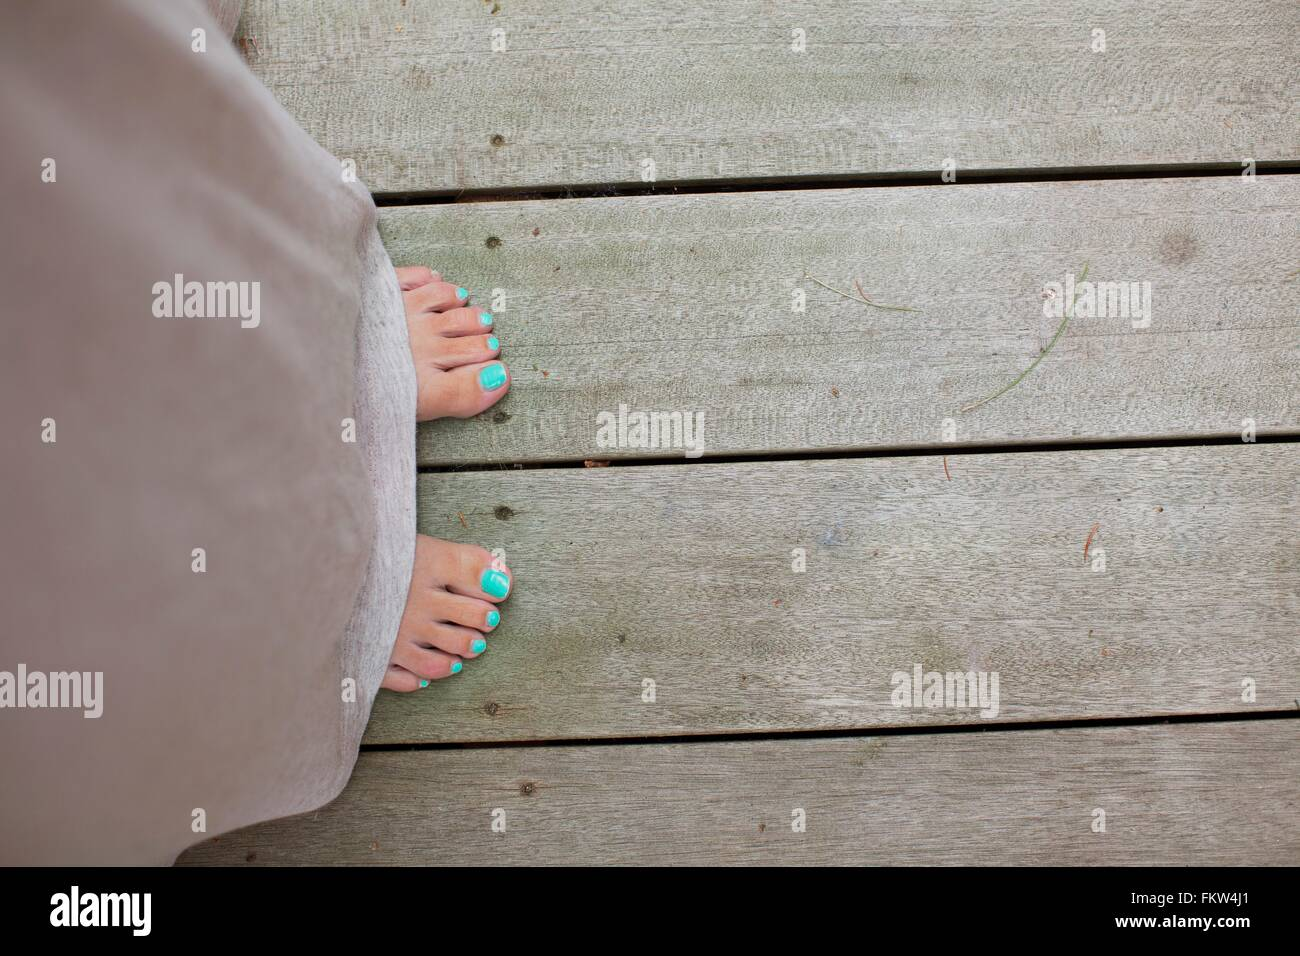 Overhead view of female toes painted with turquoise nail varnish - Stock Image